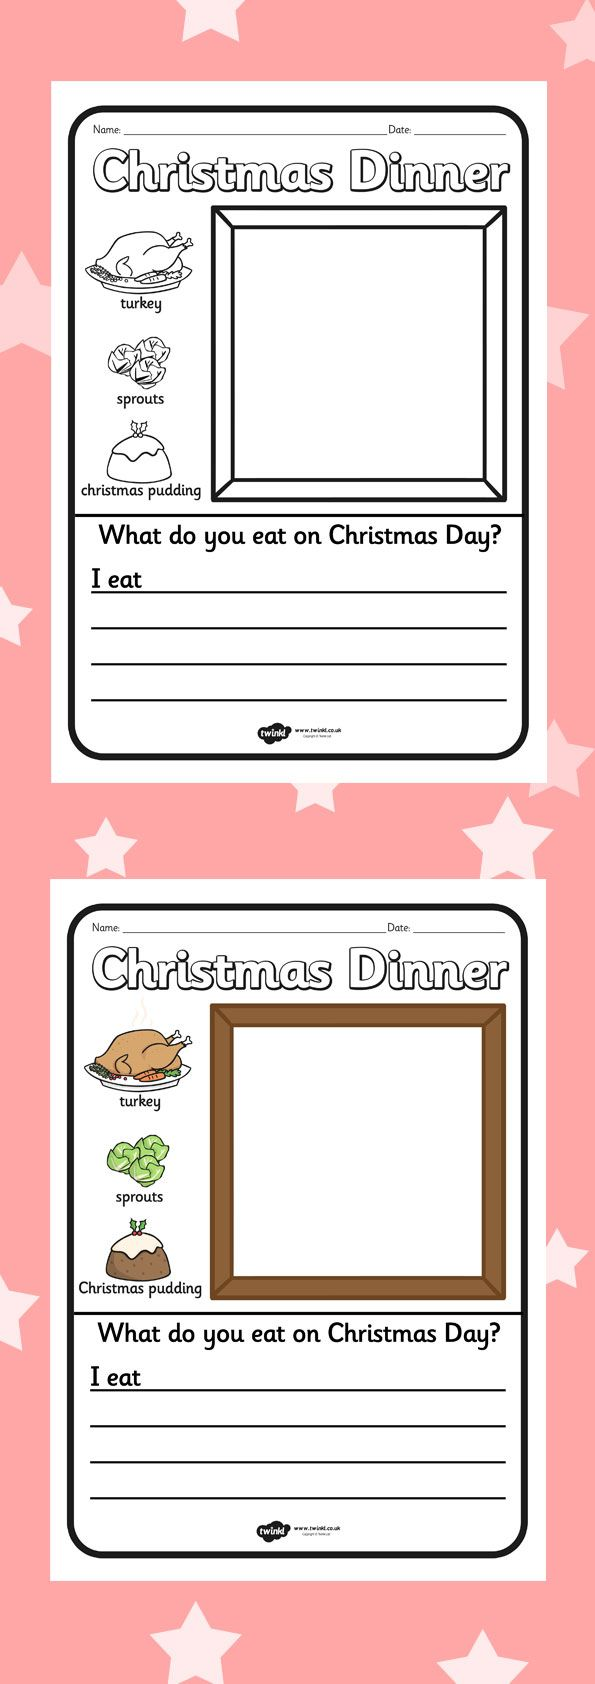 Christmas colouring in sheets twinkl - Twinkl Resources Christmas Dinner Writing Frame Printable Resources For Primary Eyfs